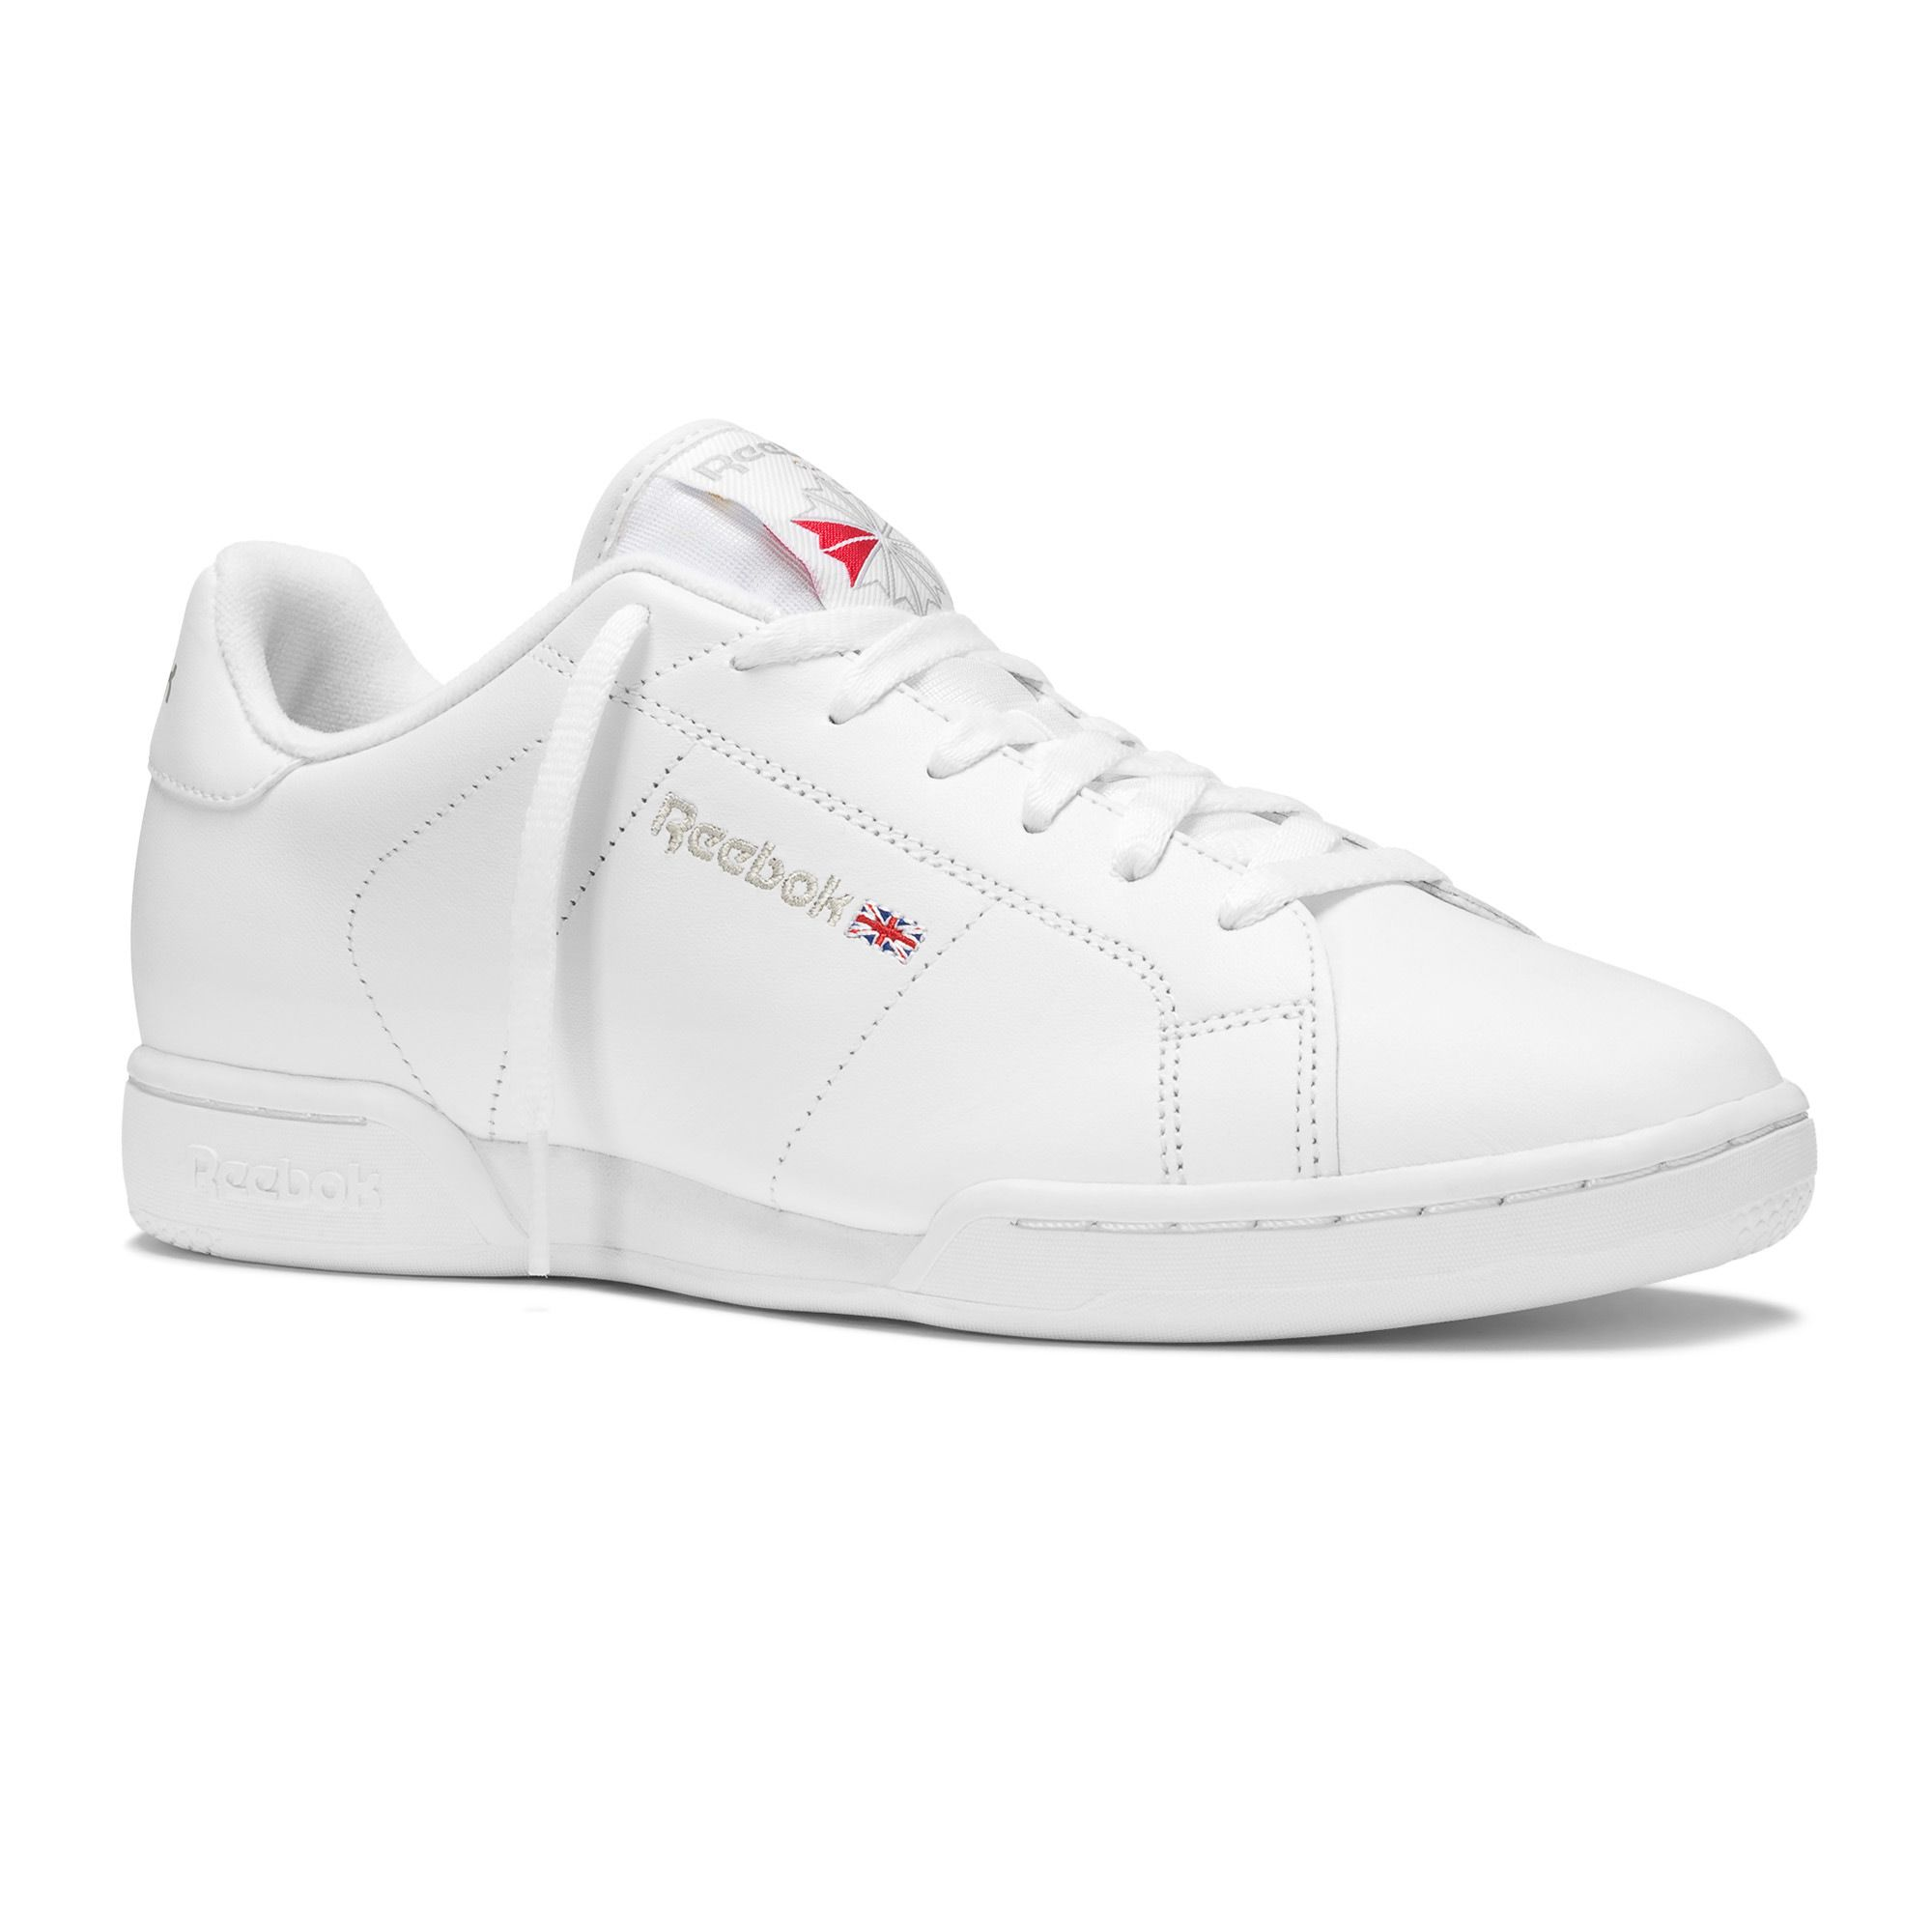 Reebok-Sports-shoes-and-running-shoes-for-men (2)